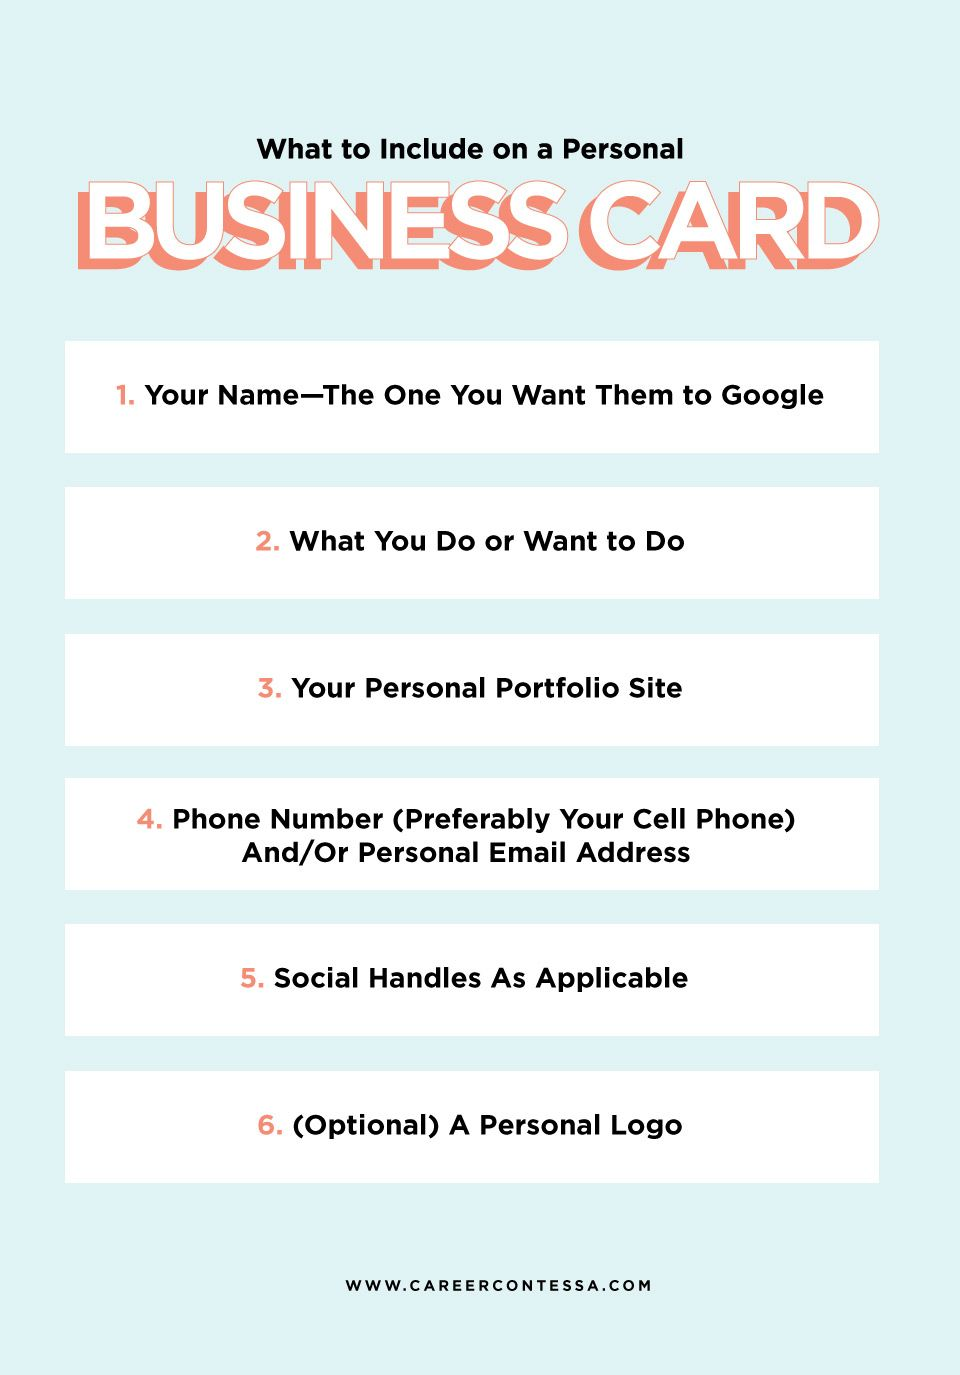 What To Put On A Personal Business Card A Template Career Contessa Student Business Cards Personal Business Cards Examples Of Business Cards